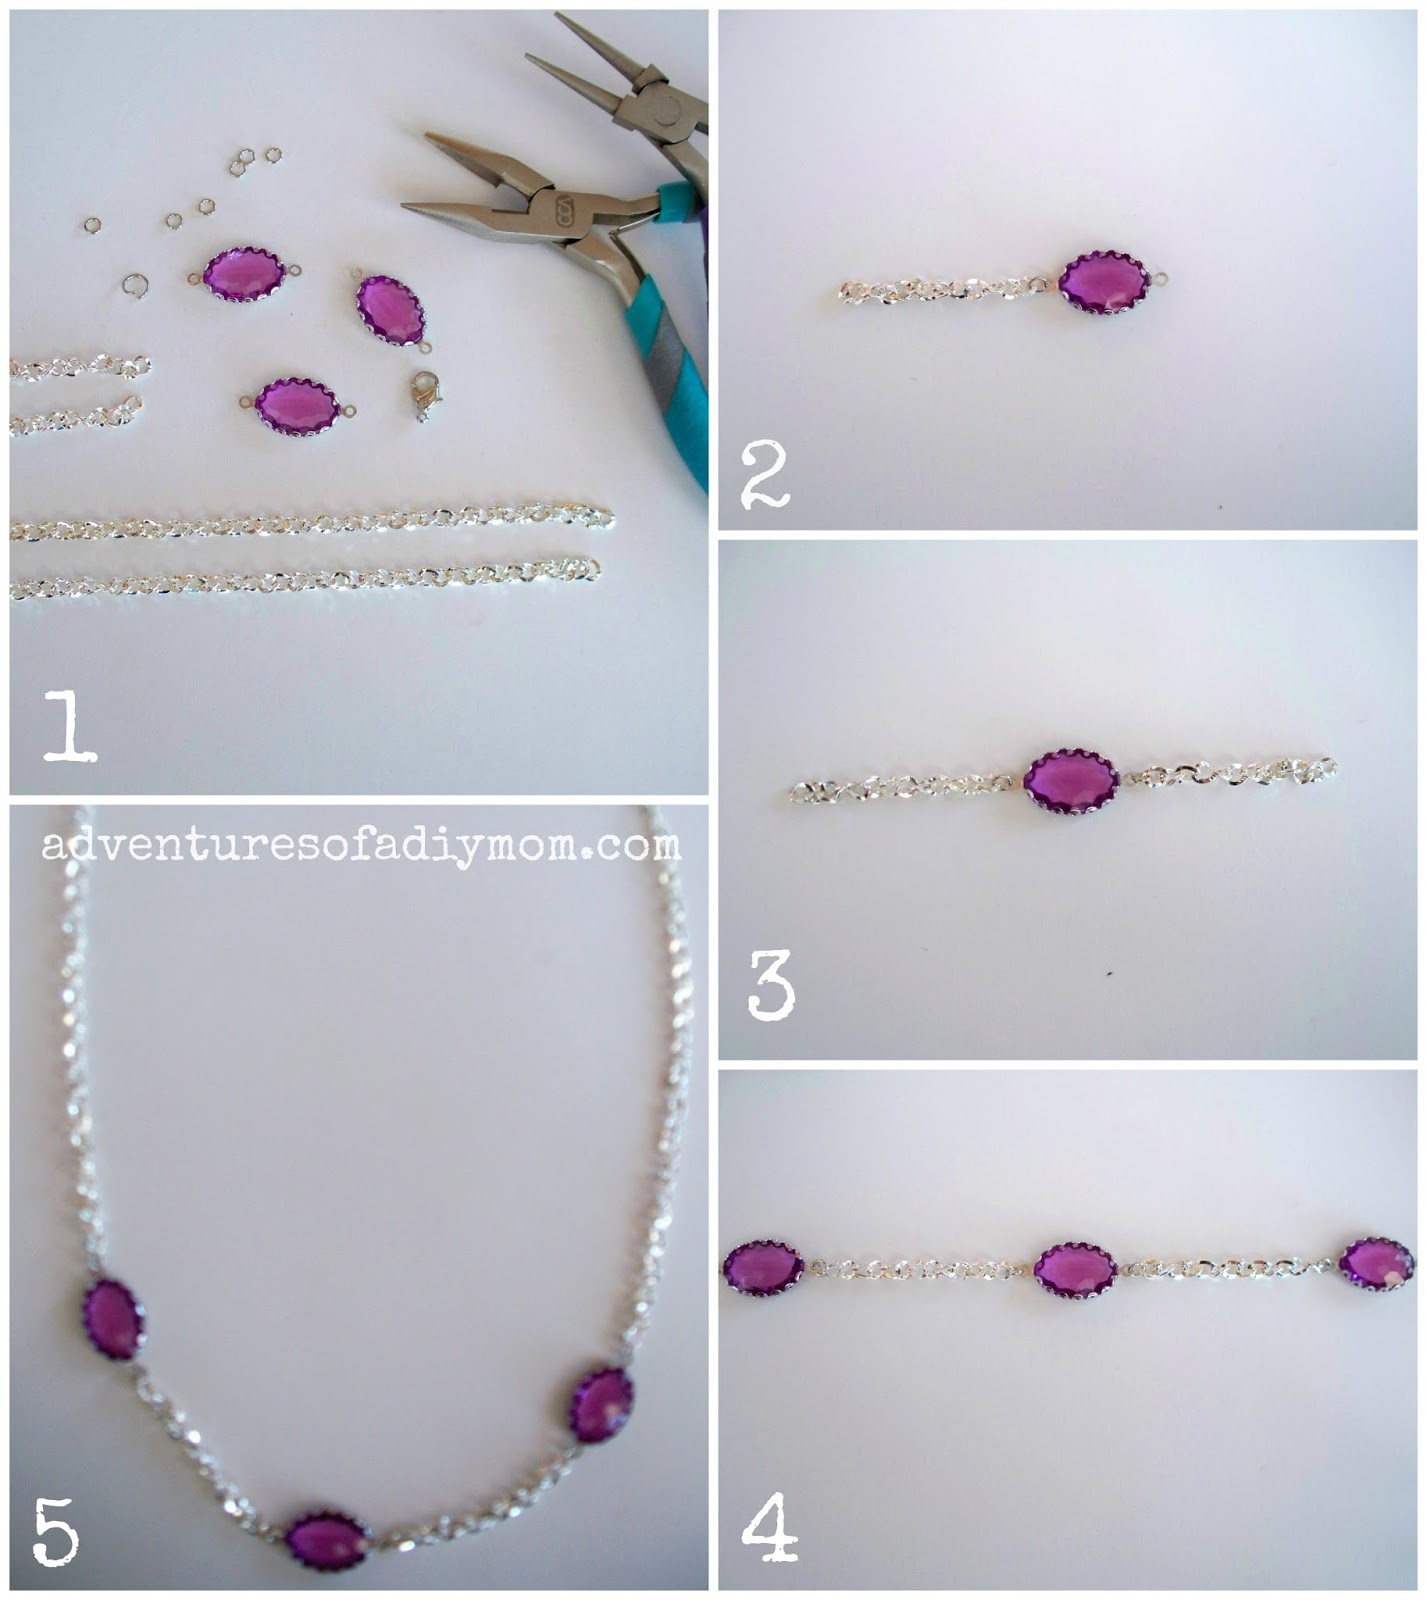 How to Make a Violet Necklace